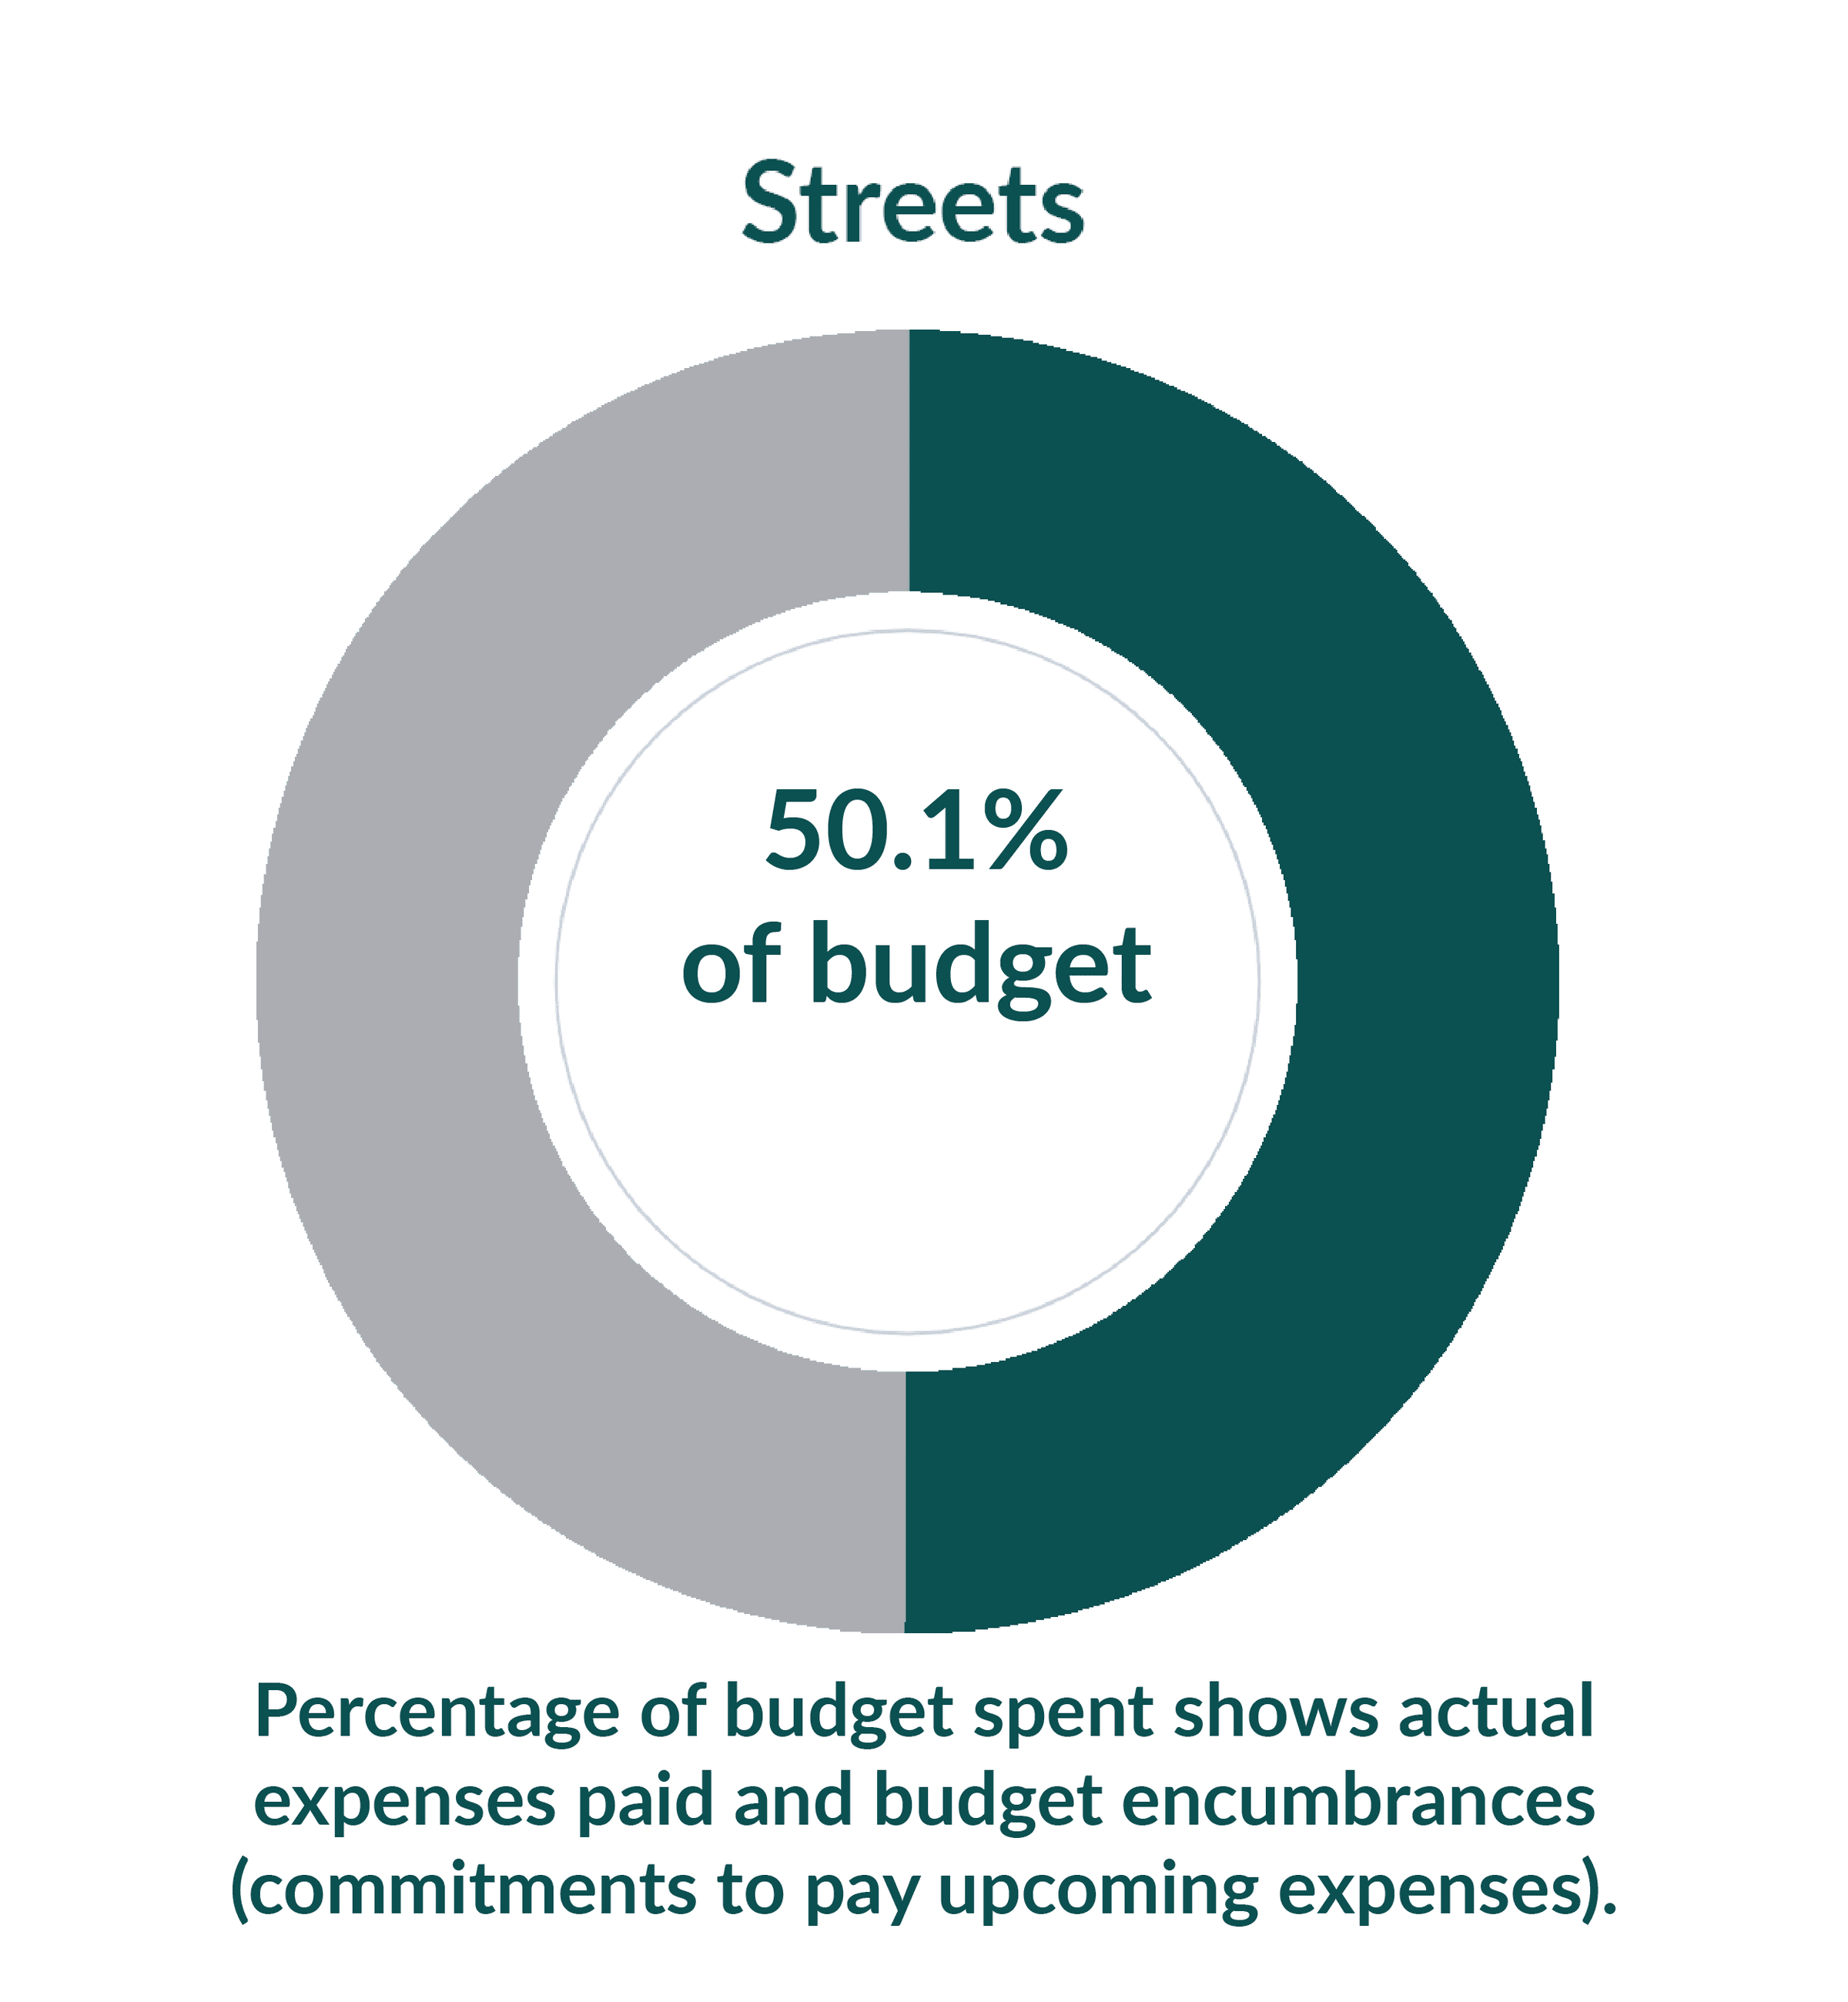 Streets: 18.9% of budget used as of July 1, 2020